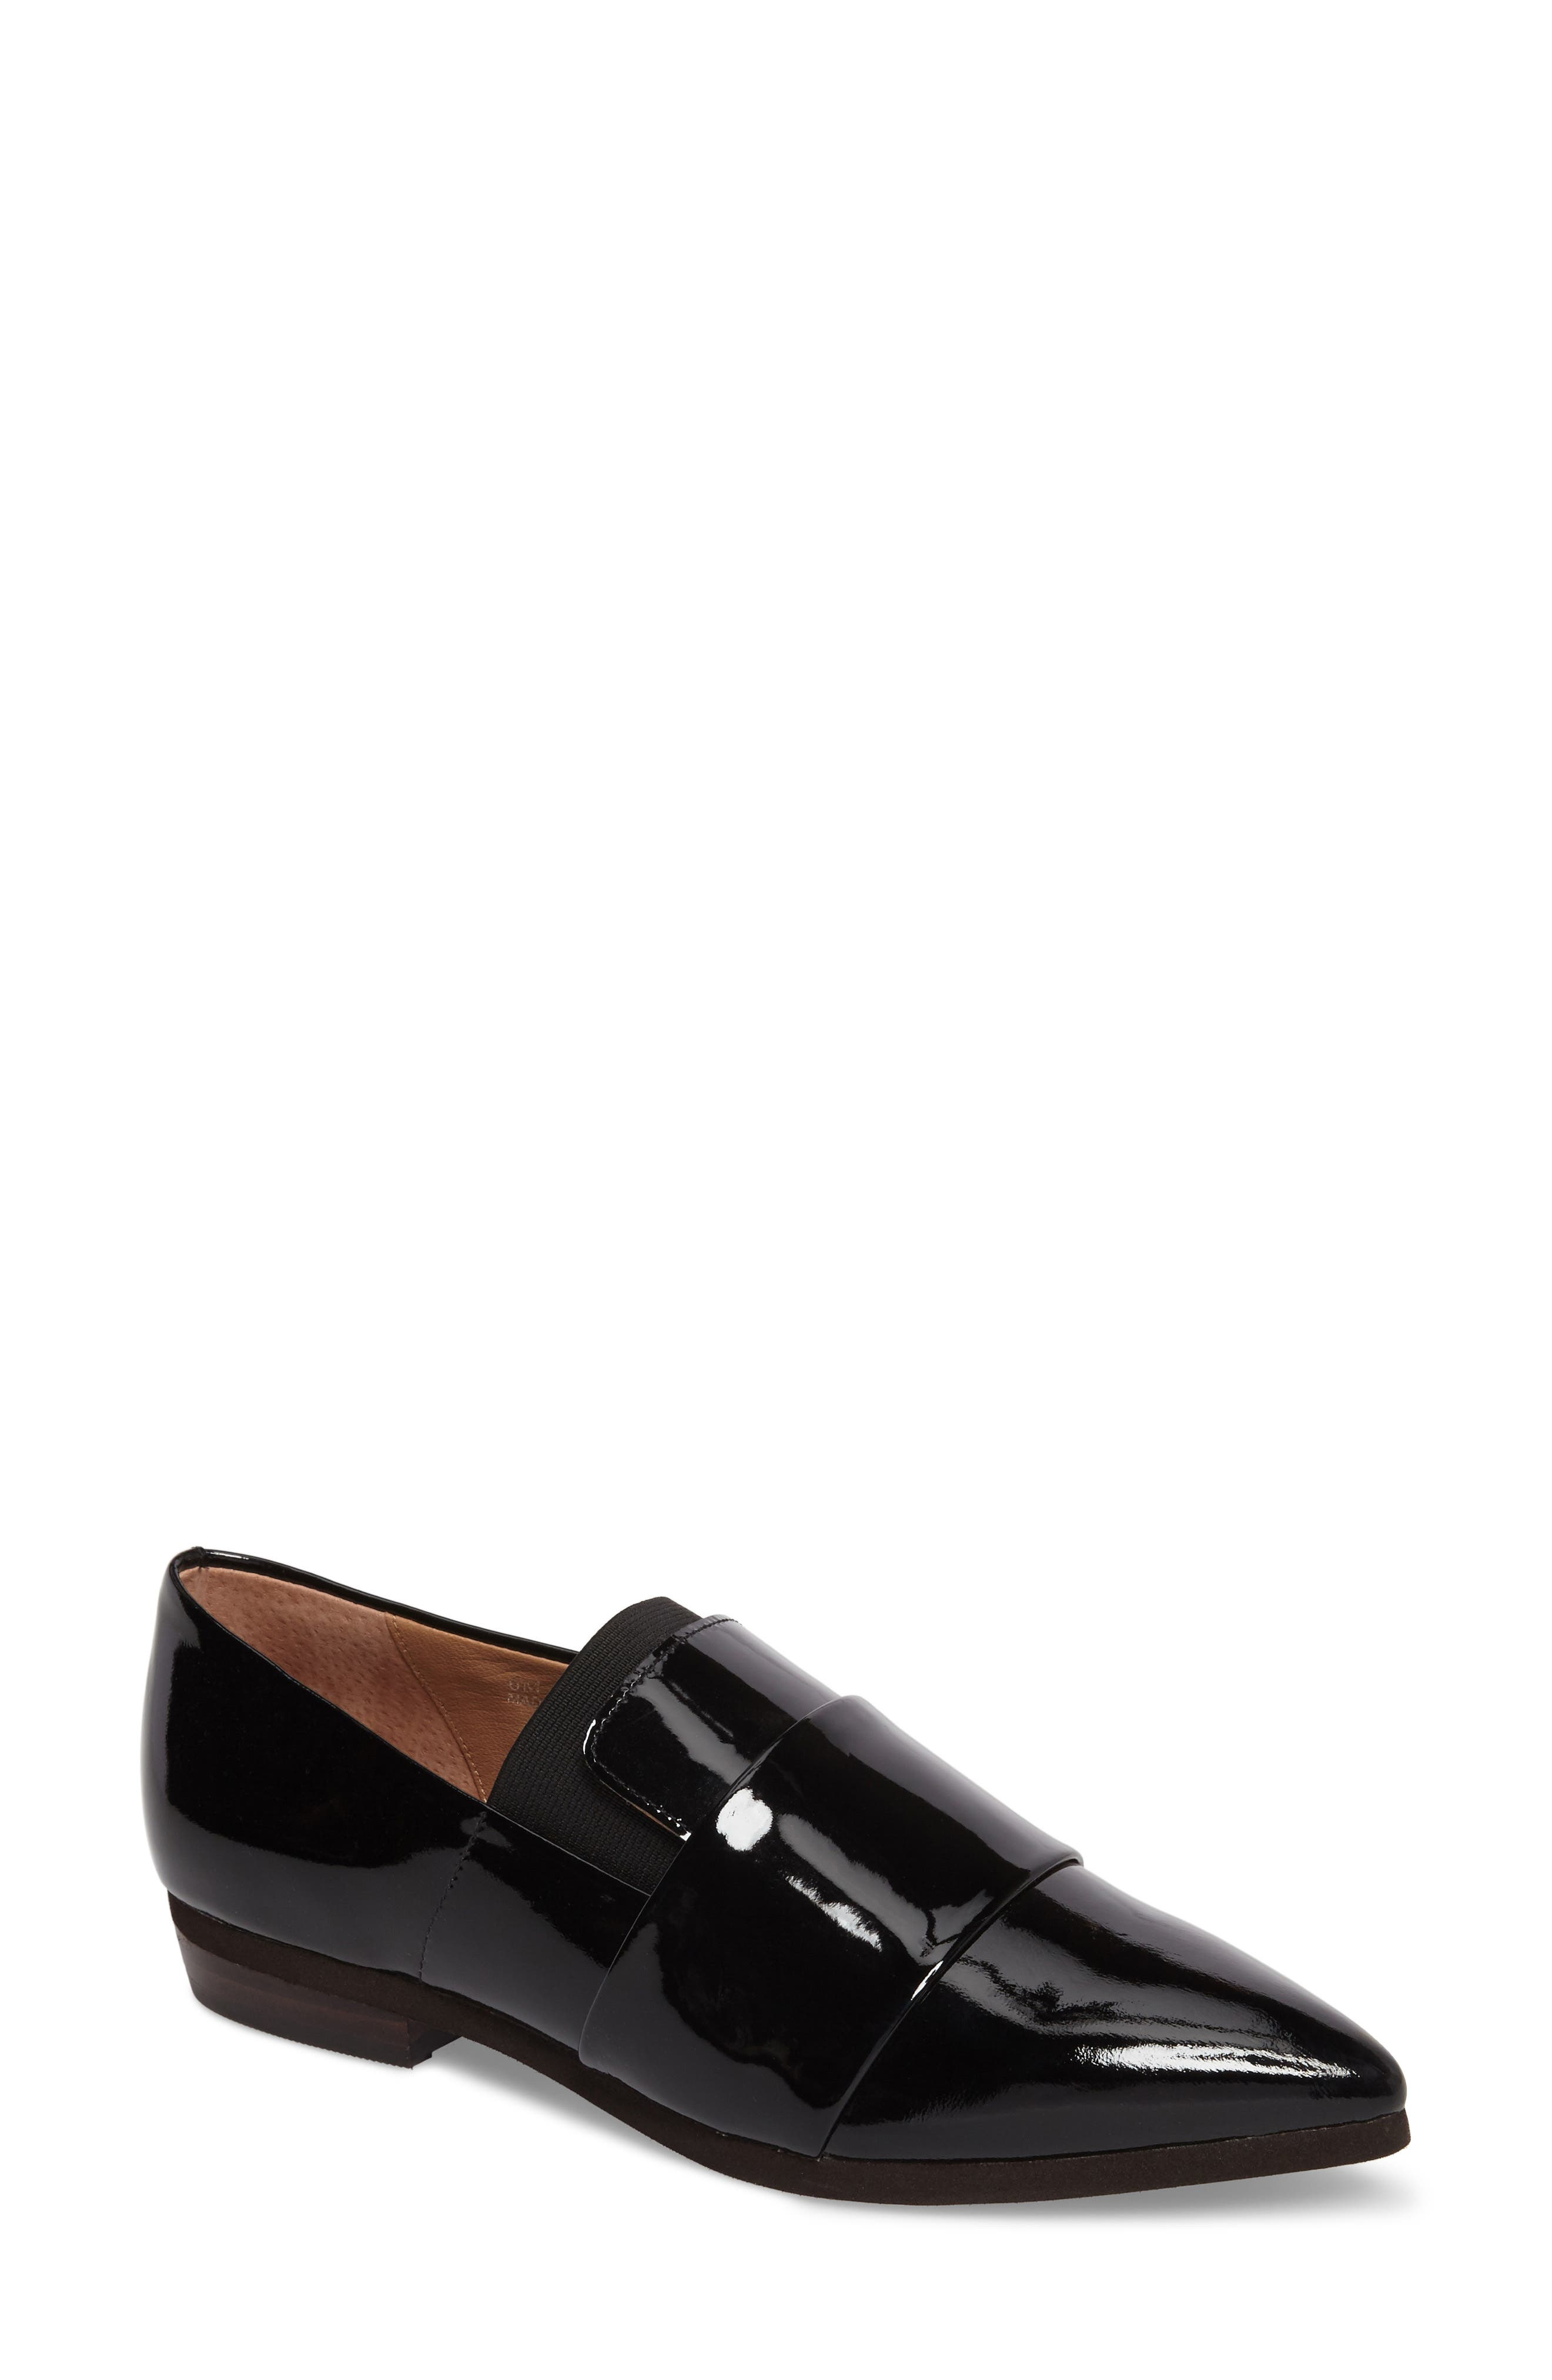 Main Image - Linea Paolo Madison Loafer (Women)